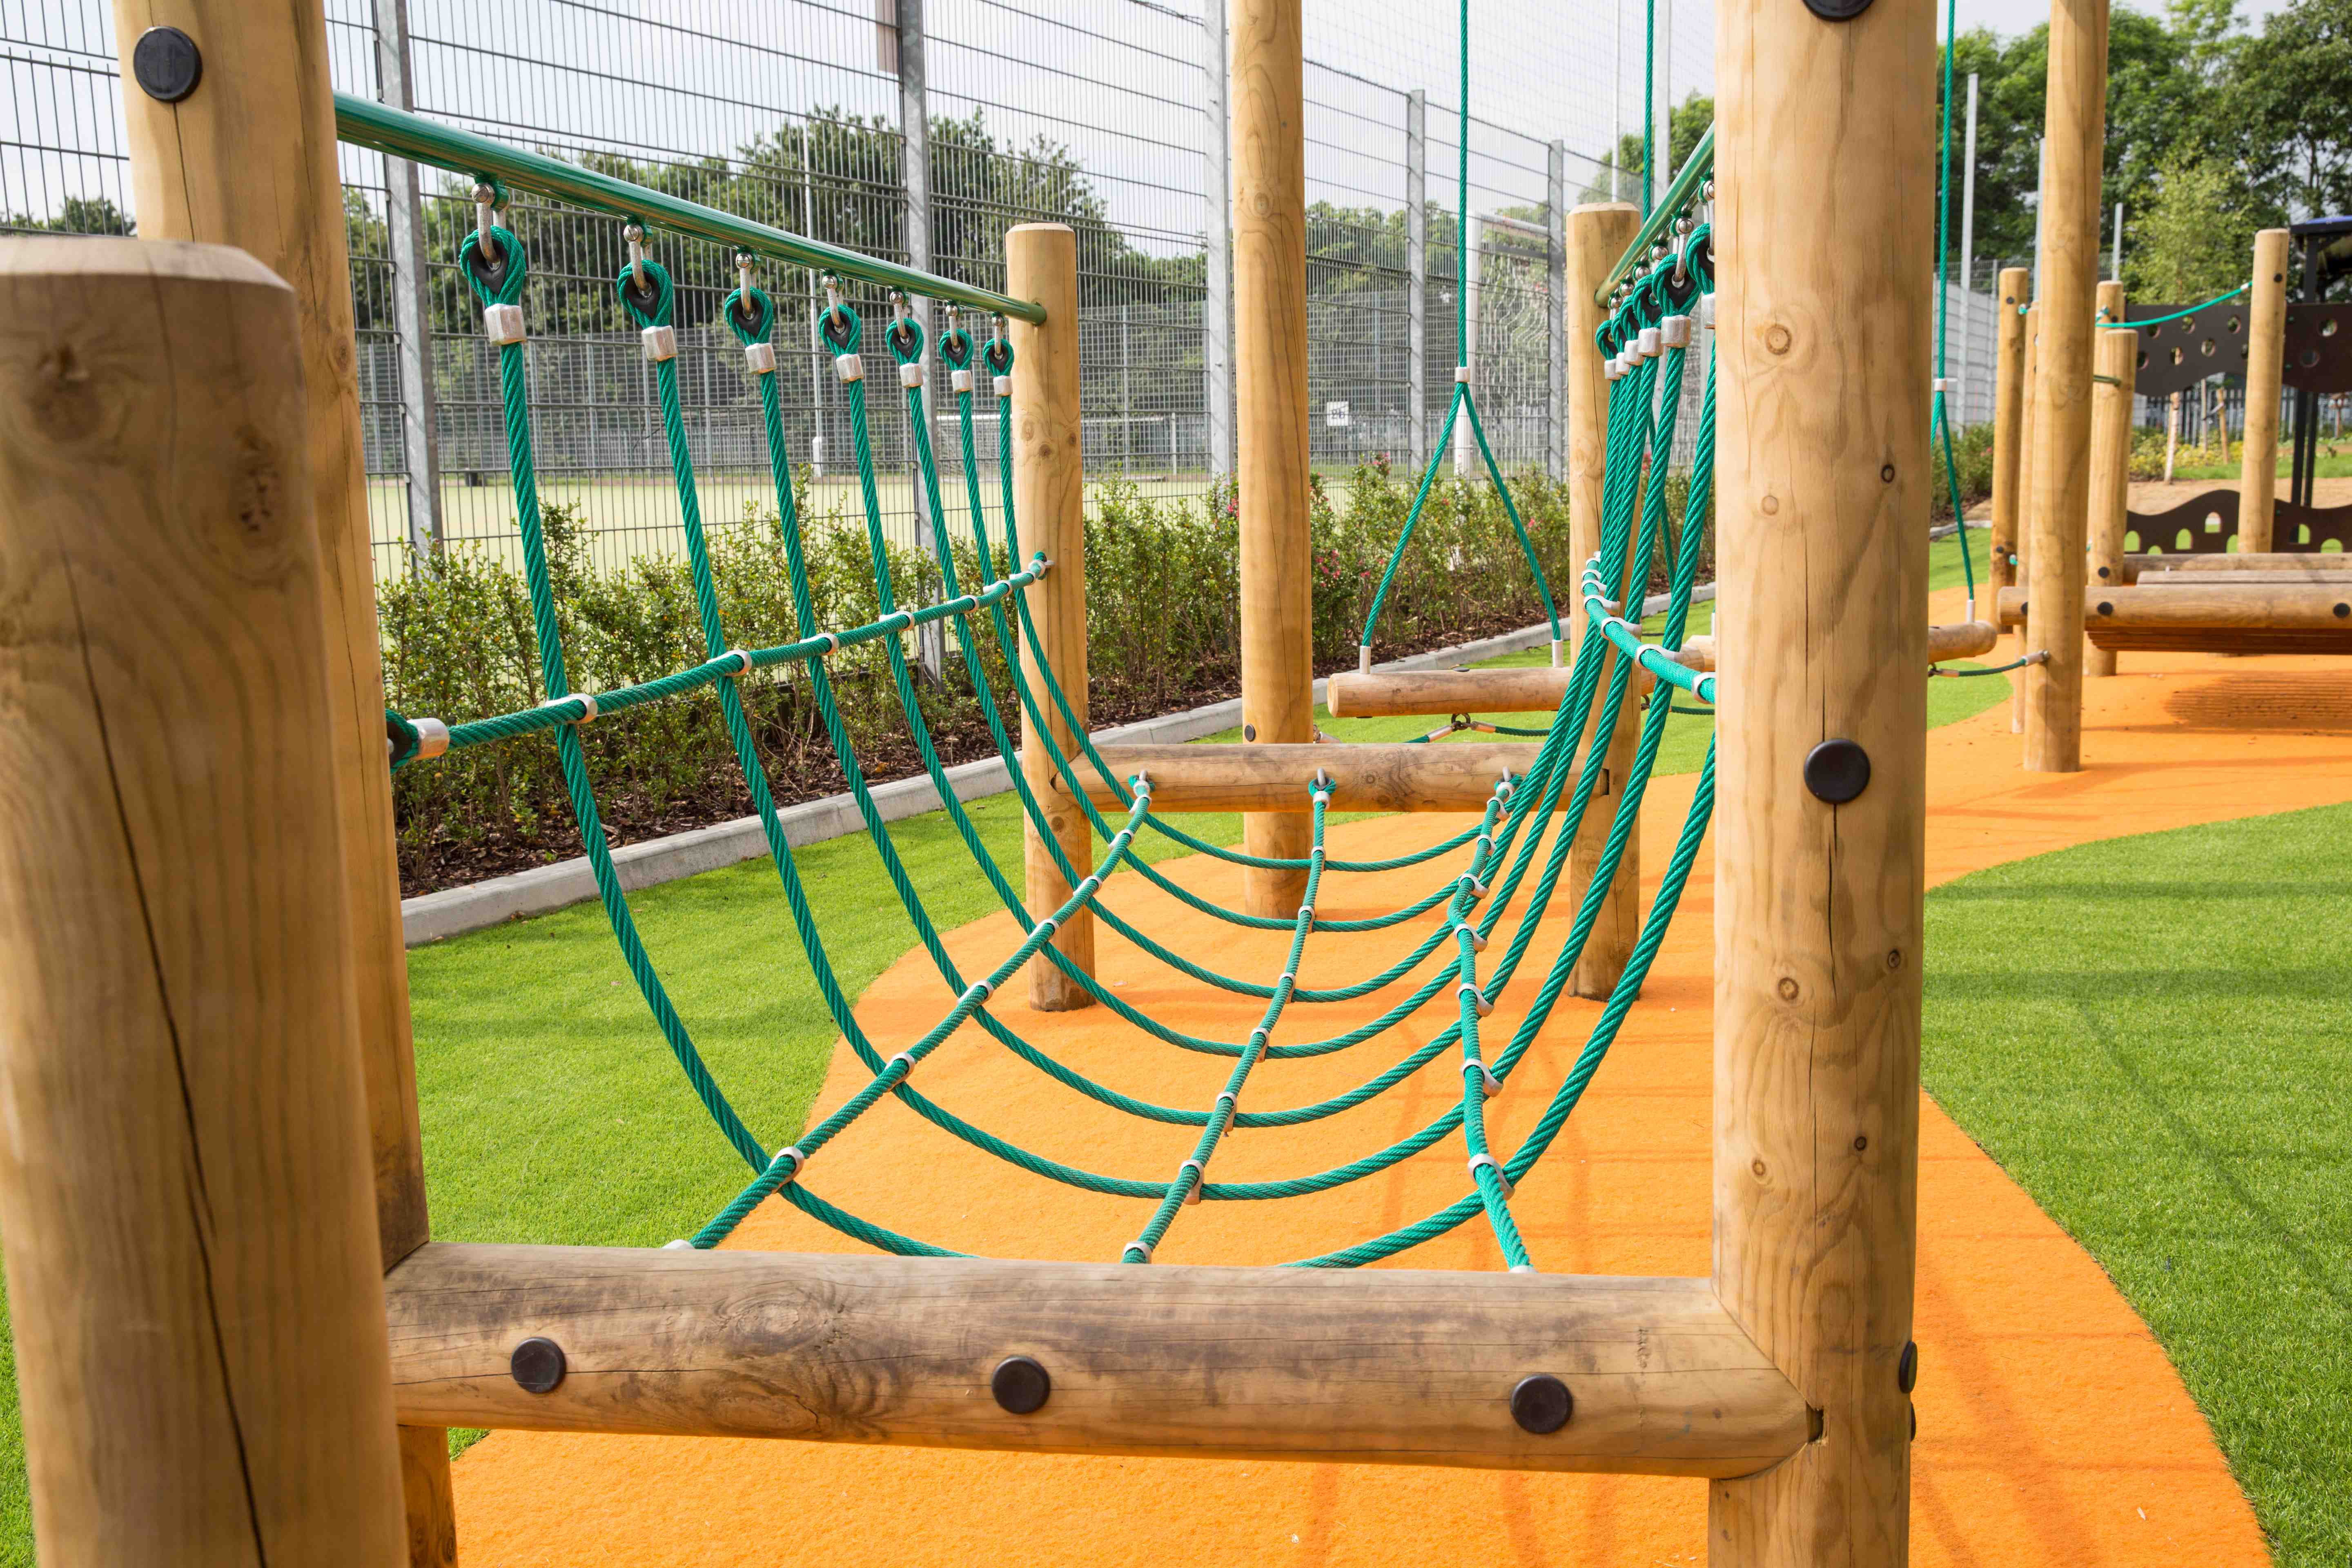 Trim Trail | School Playground Equipment